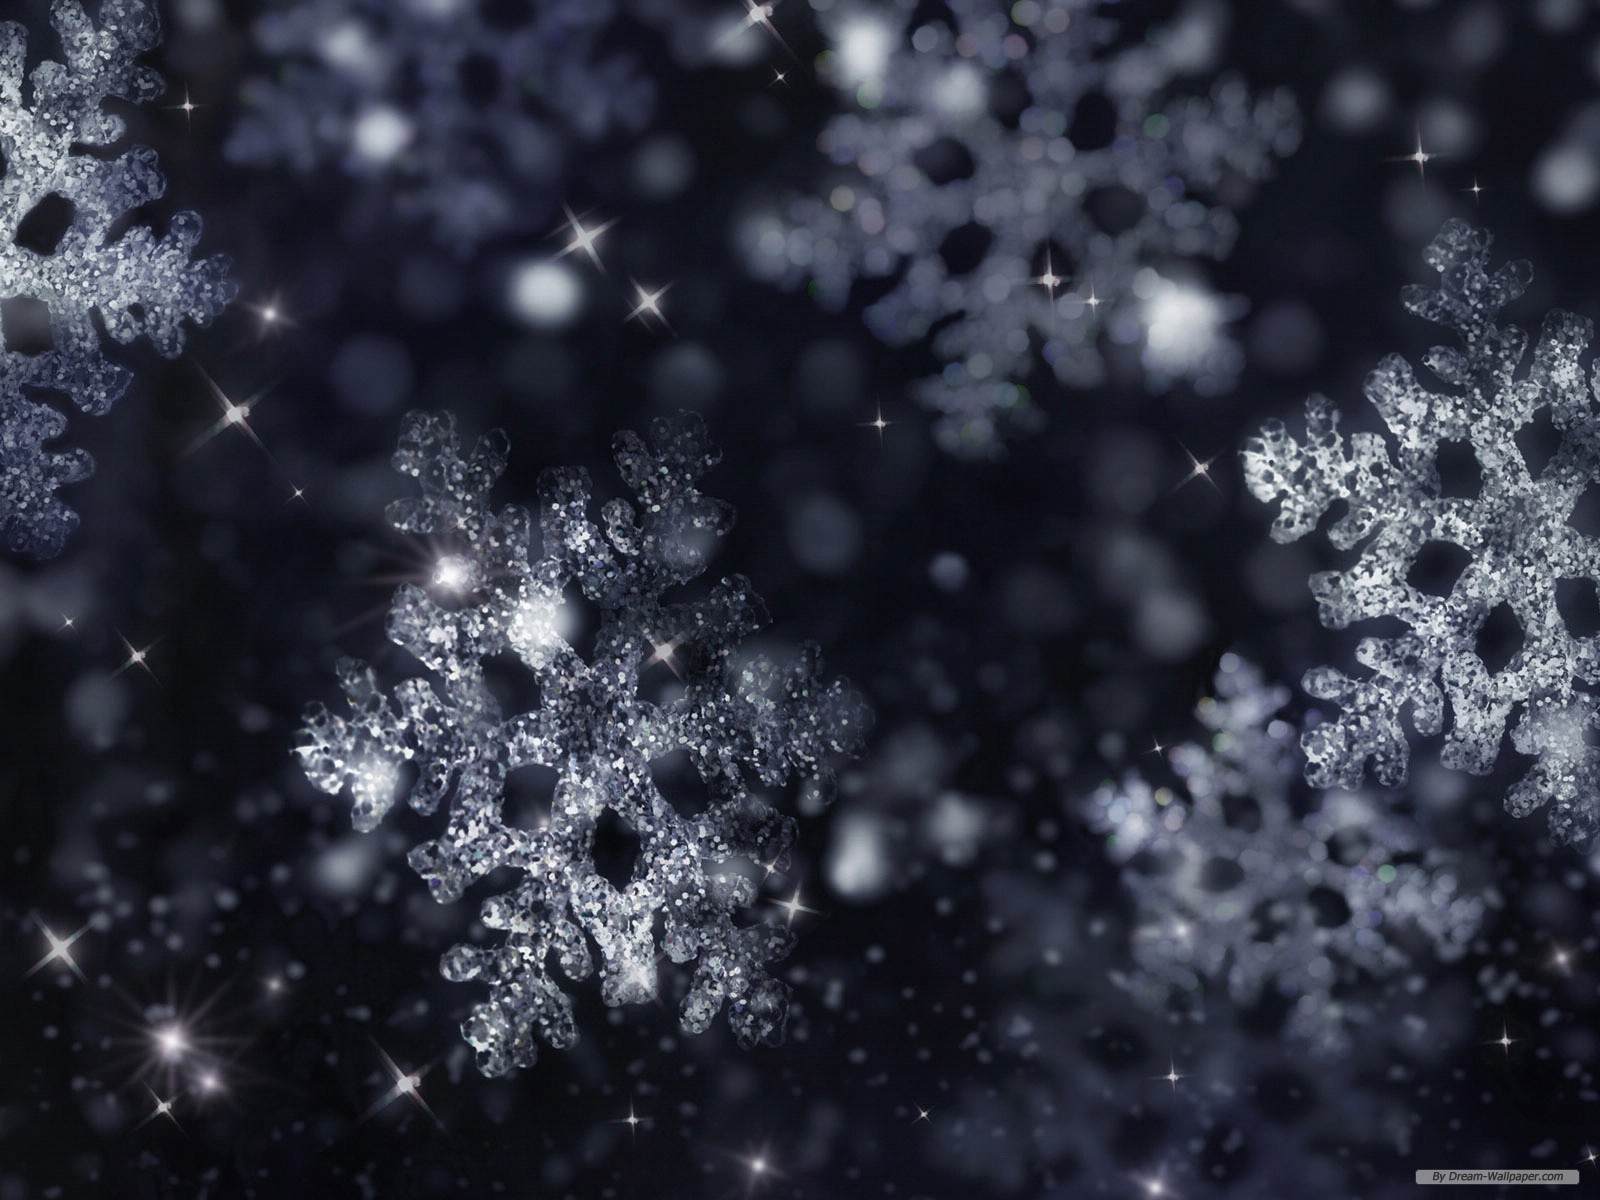 Winter snowflake background vector download 1600x1200 1600x1200